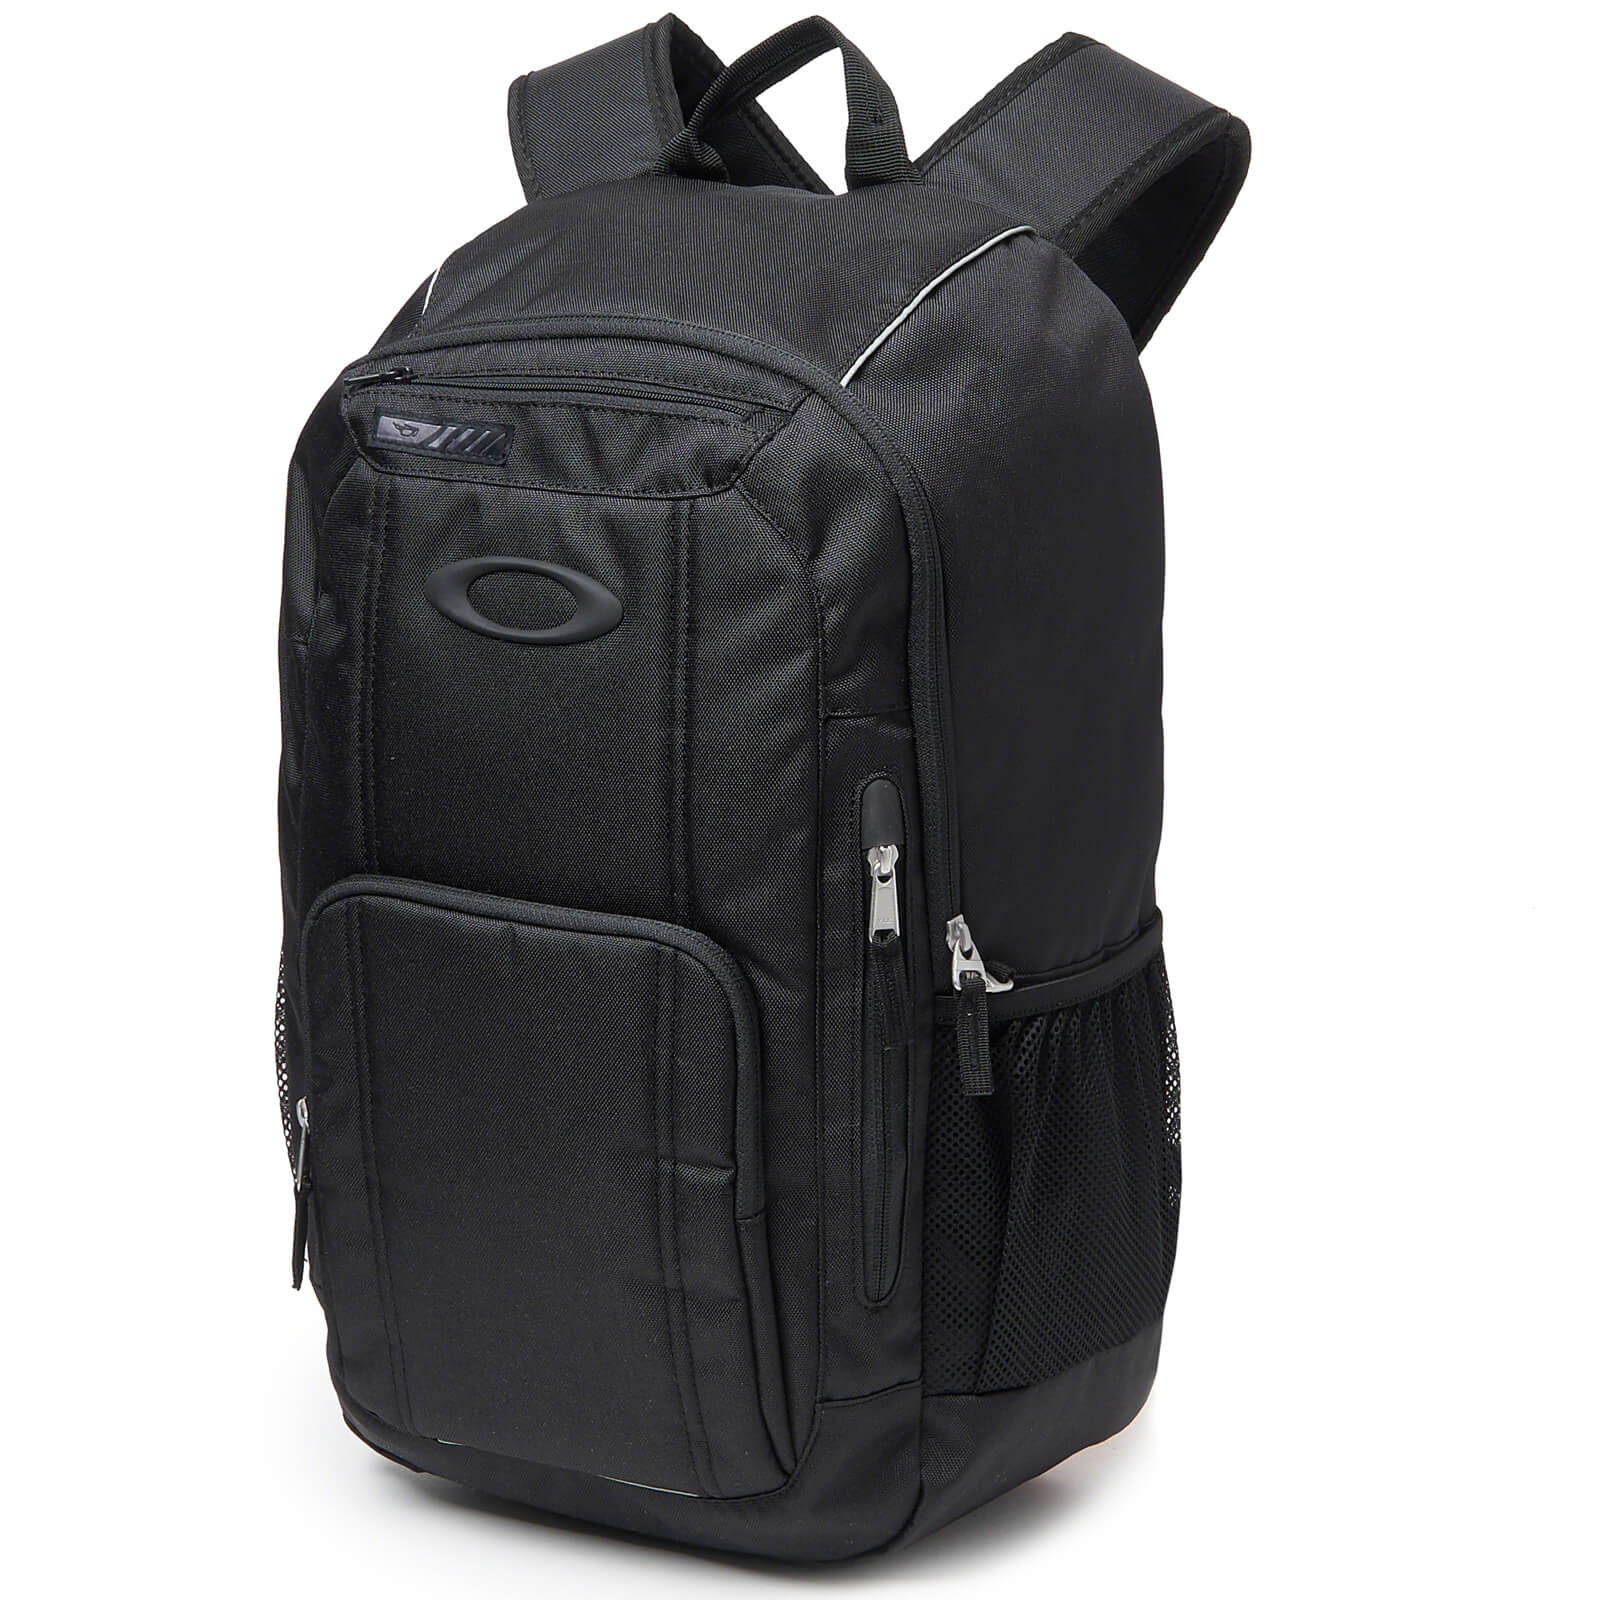 Oakley Enduro 25L 2.0 Backpack - Black